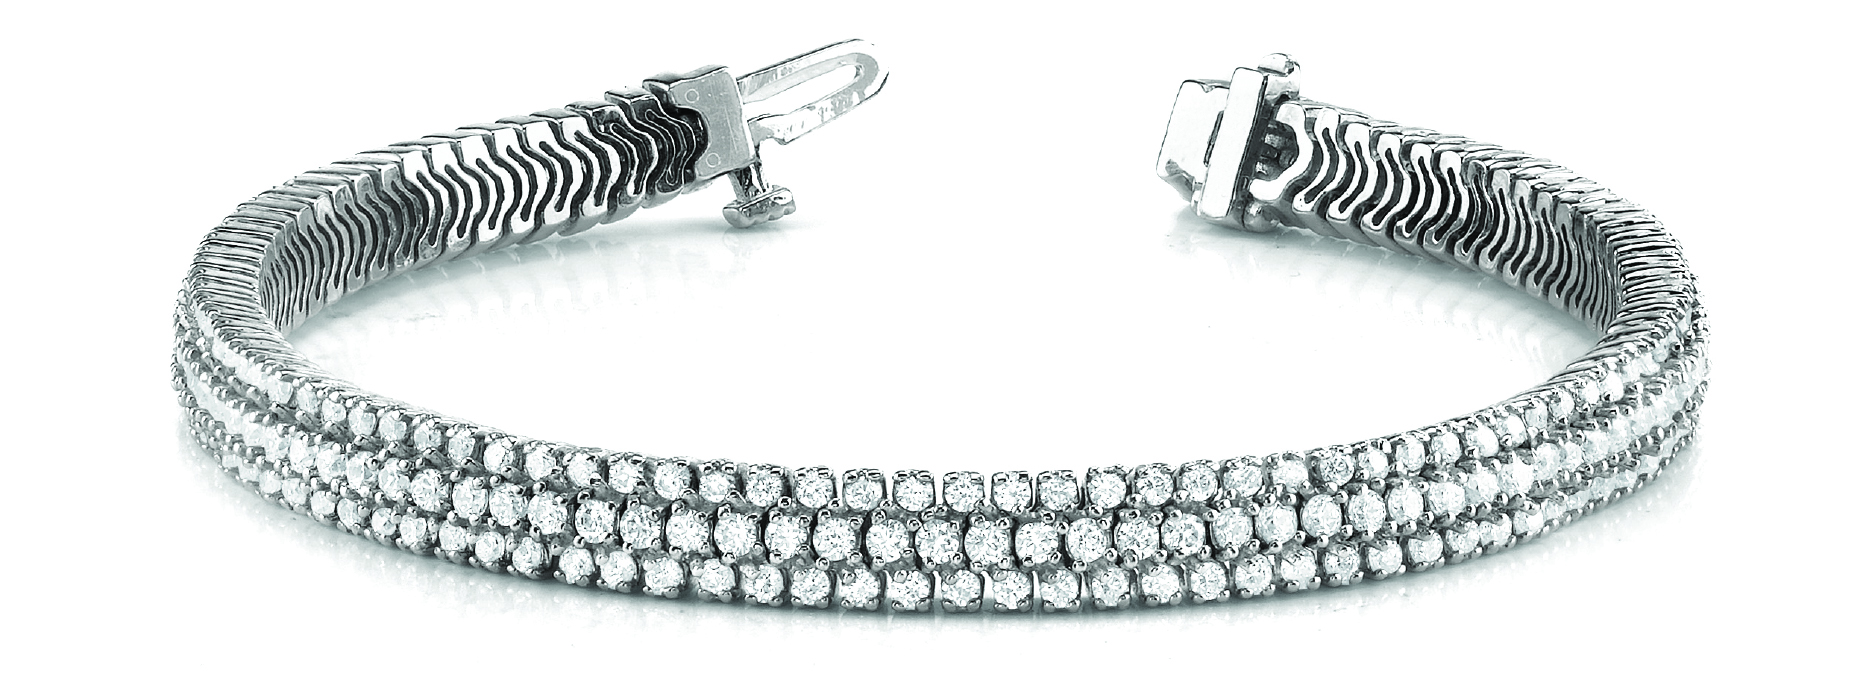 Multi Row Etoil Round Diamond Platinum Bracelet 9 Ct.